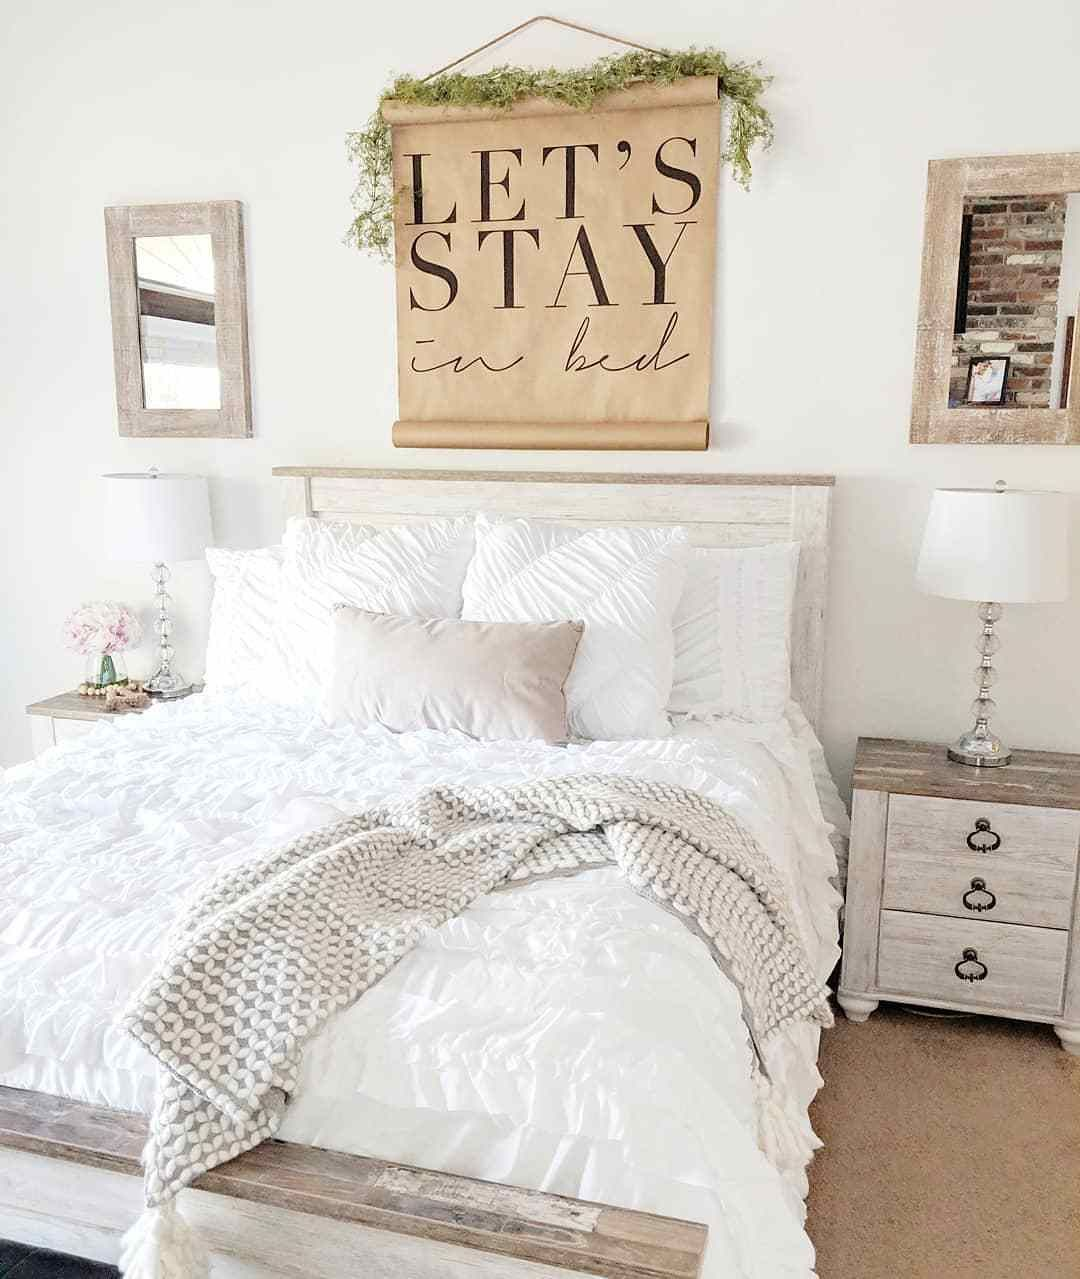 You Don T Have To Tell Us Twice We Never Wanted To Leave In The First Place Bedroom Design Bedroom Furniture Farm Bedroom